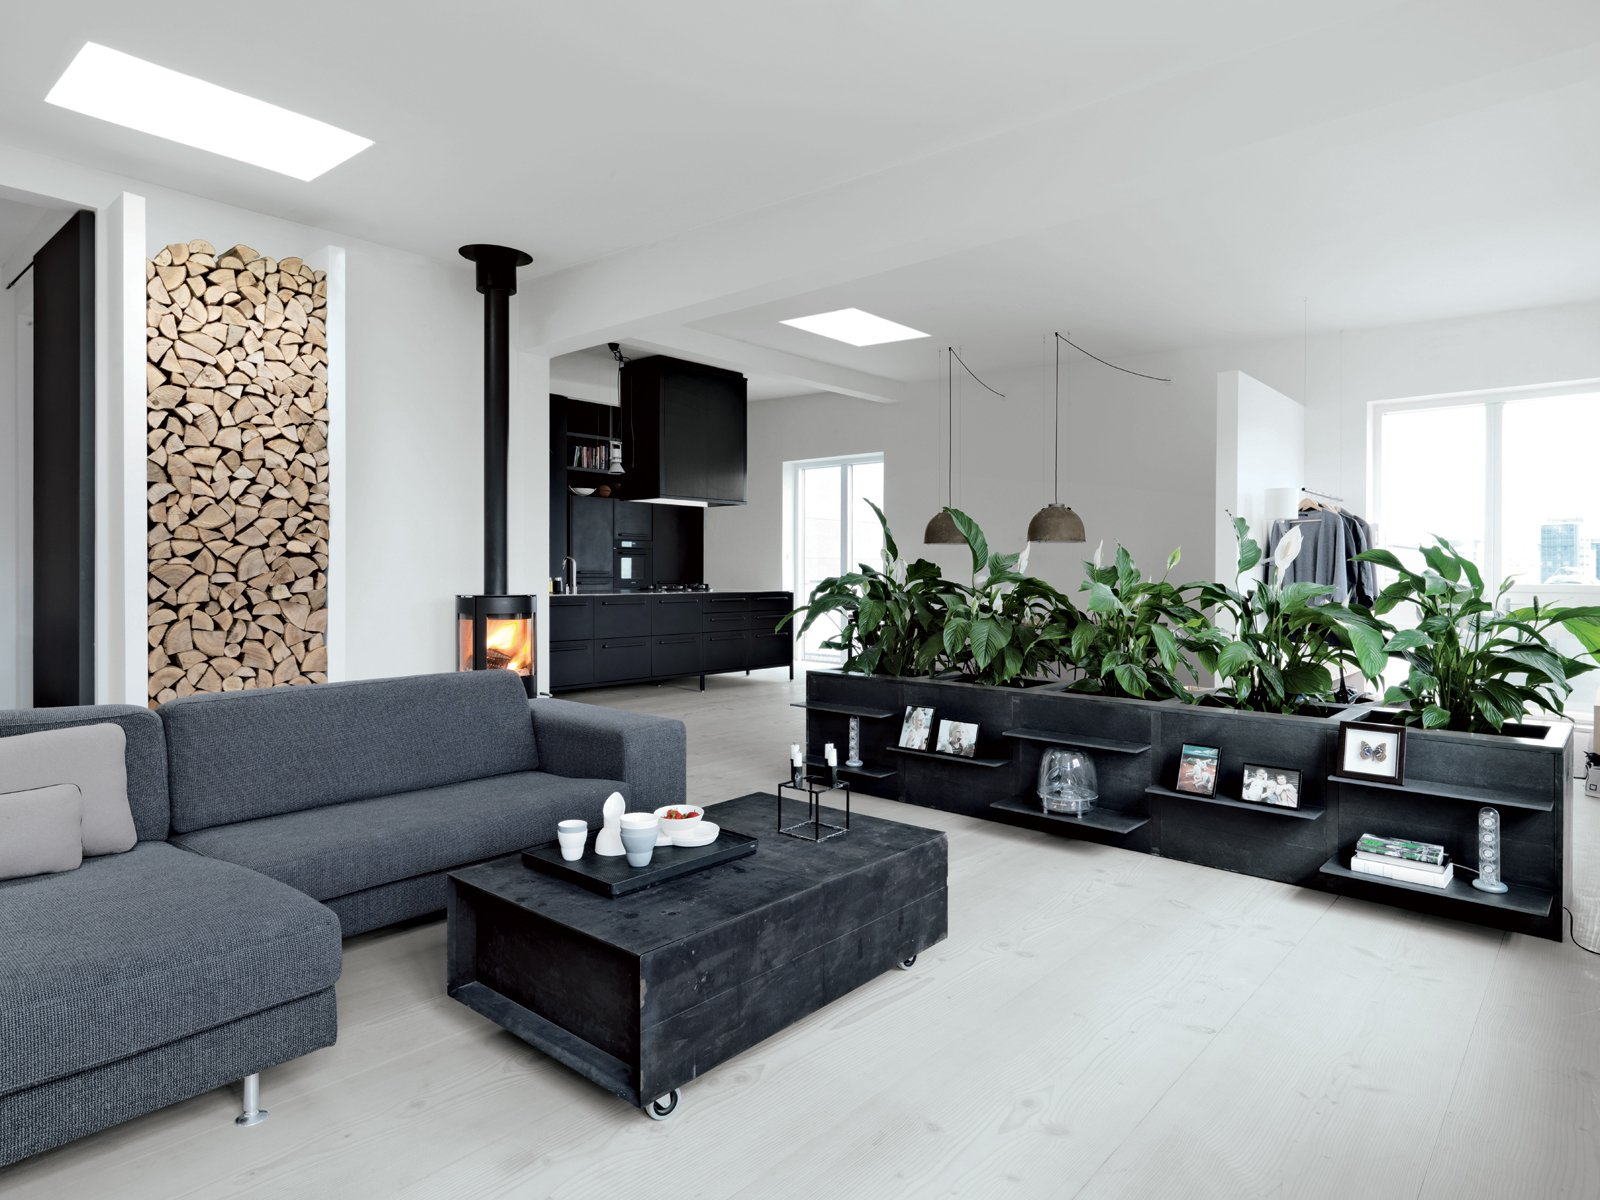 """The living room features a sofa from Engell; a suspended Parentesi lamp by Achille Castiglioni and Pio Manzù for Flos (Olsen's """"all-time favorite""""); and a wood-burning stove made by Aduro. The firewood nook set in the left wall is Jensen's own design. Olsen is responsible for the low planters around the perimeter, which she had fabricated from poured concrete framed in welded iron, with lacquered MDF panels for doors. """"Some people laughed because we'd never had plants in our apartment,"""" she says. """"So when we wanted a hedge, our friends were, like, Ok. Really? Good luck with that."""""""